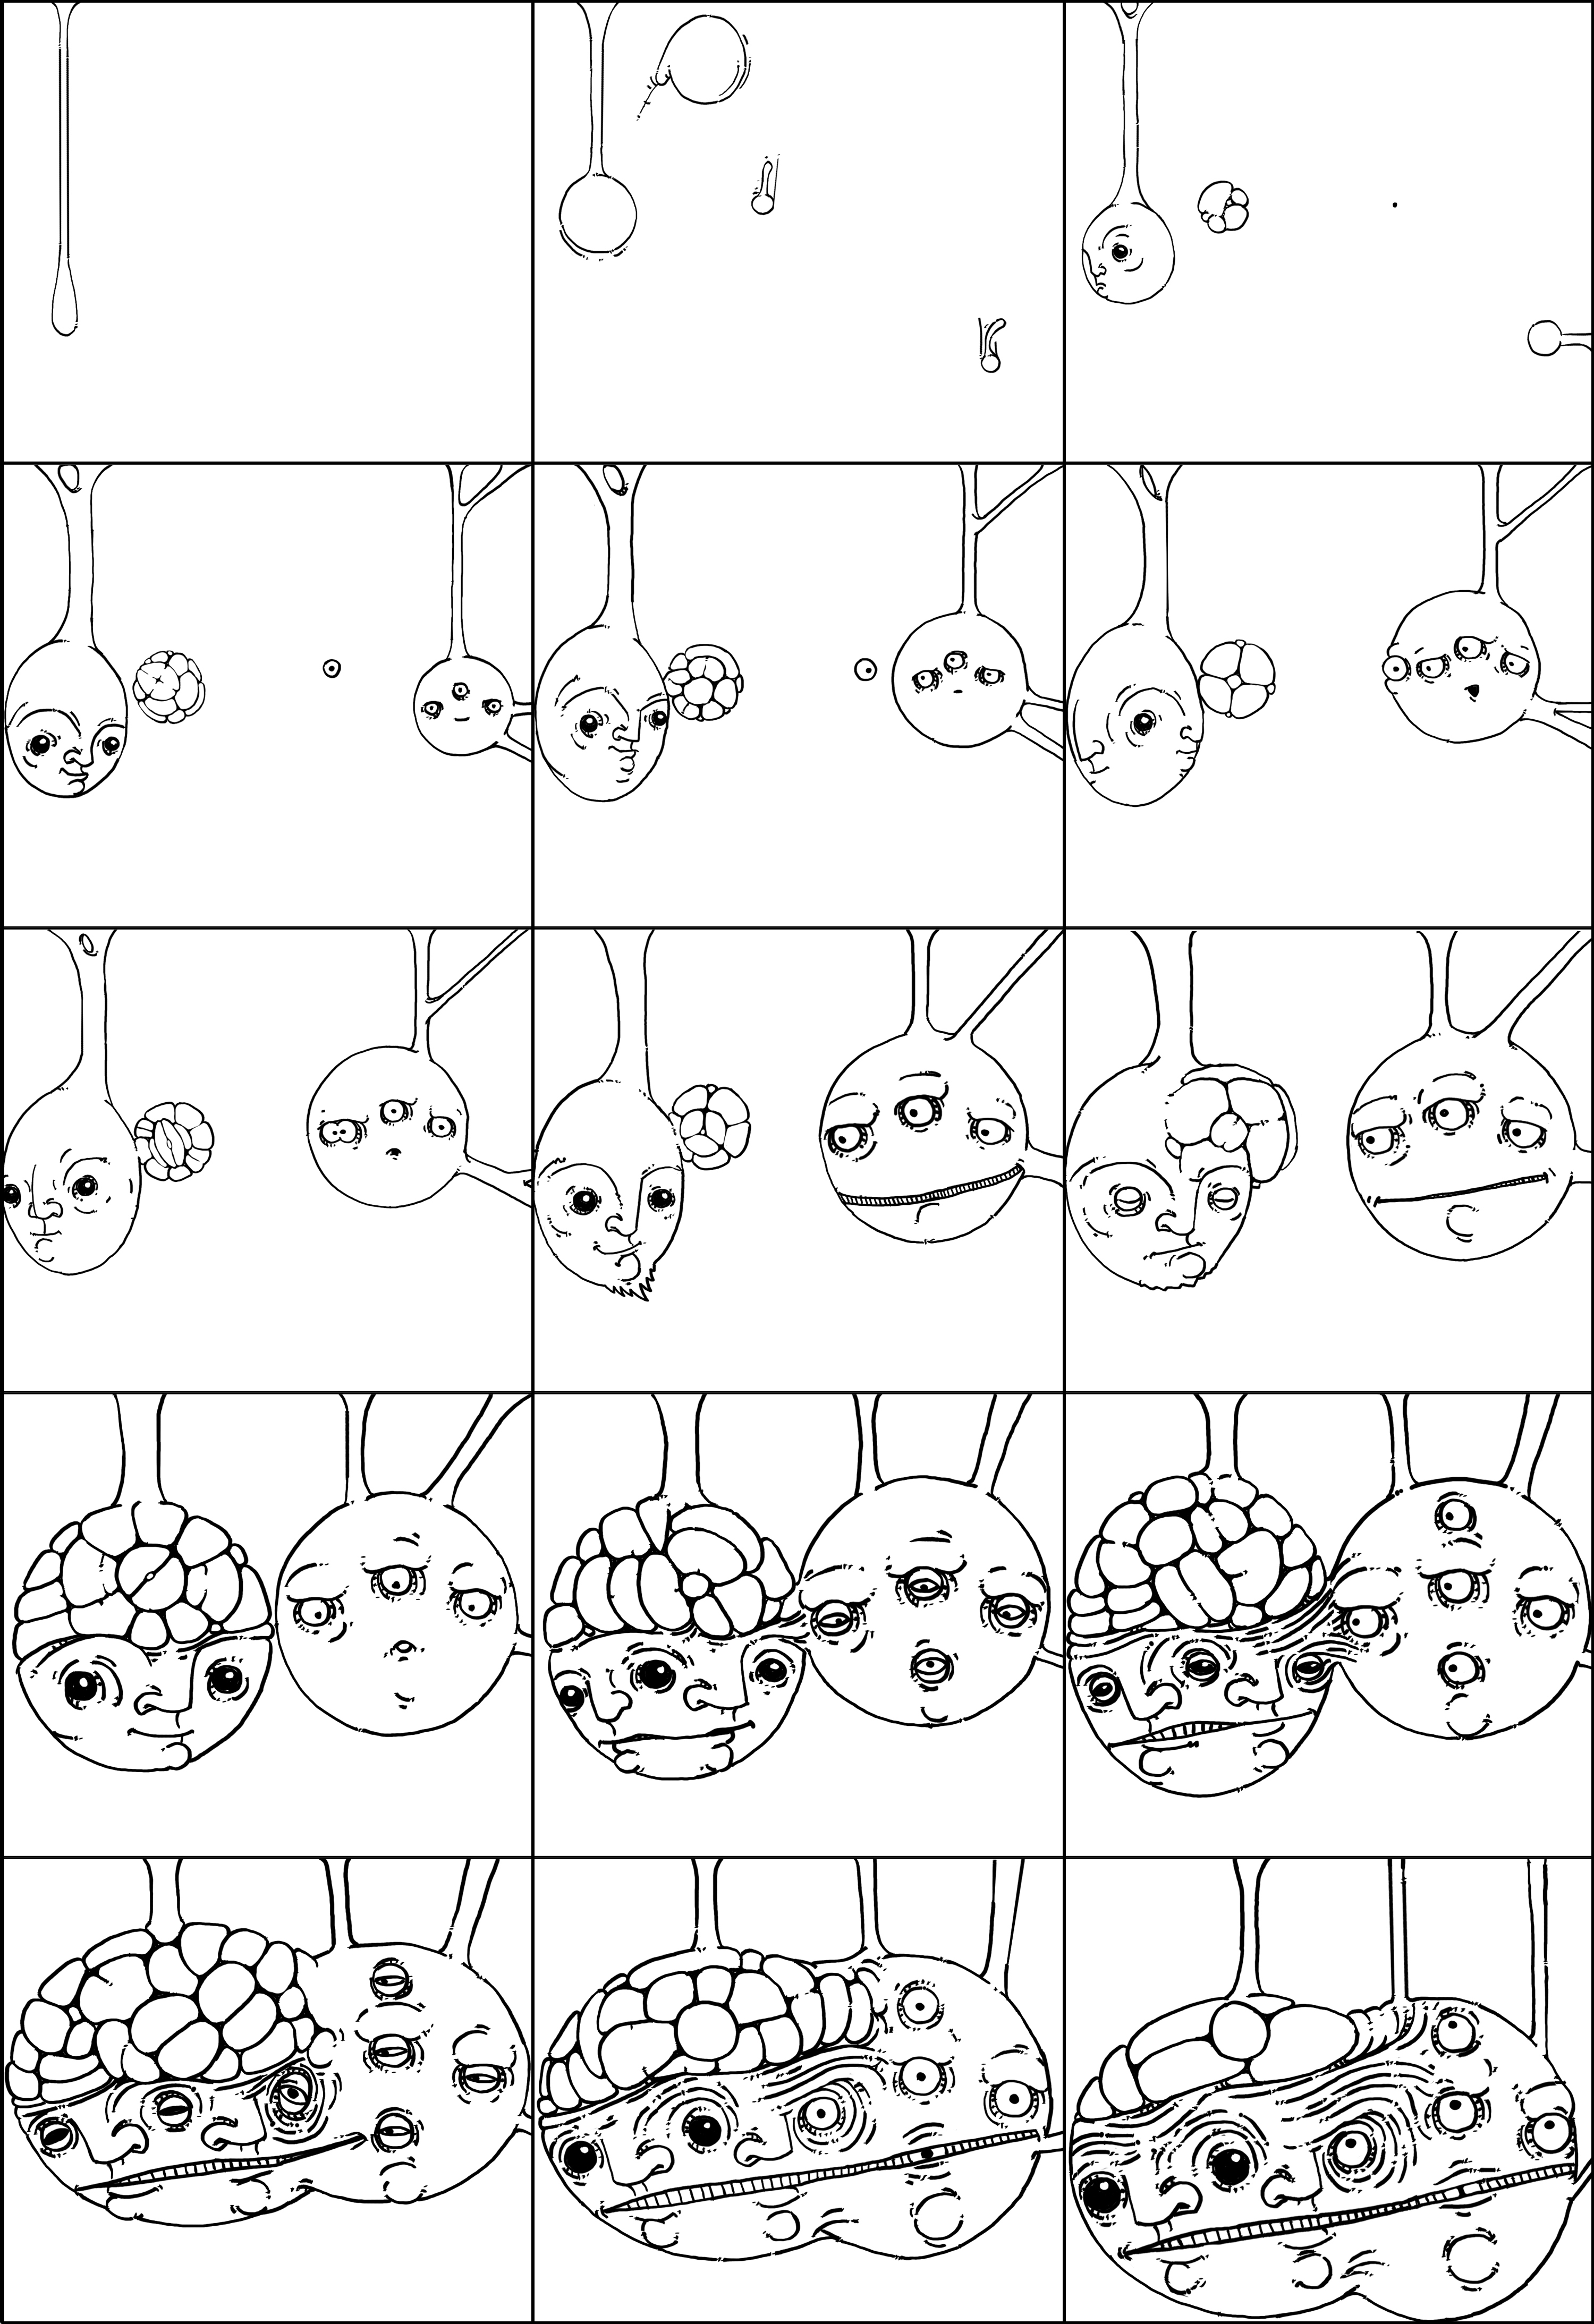 The Big Bang (Frames from Animation) by WladART on DeviantArt